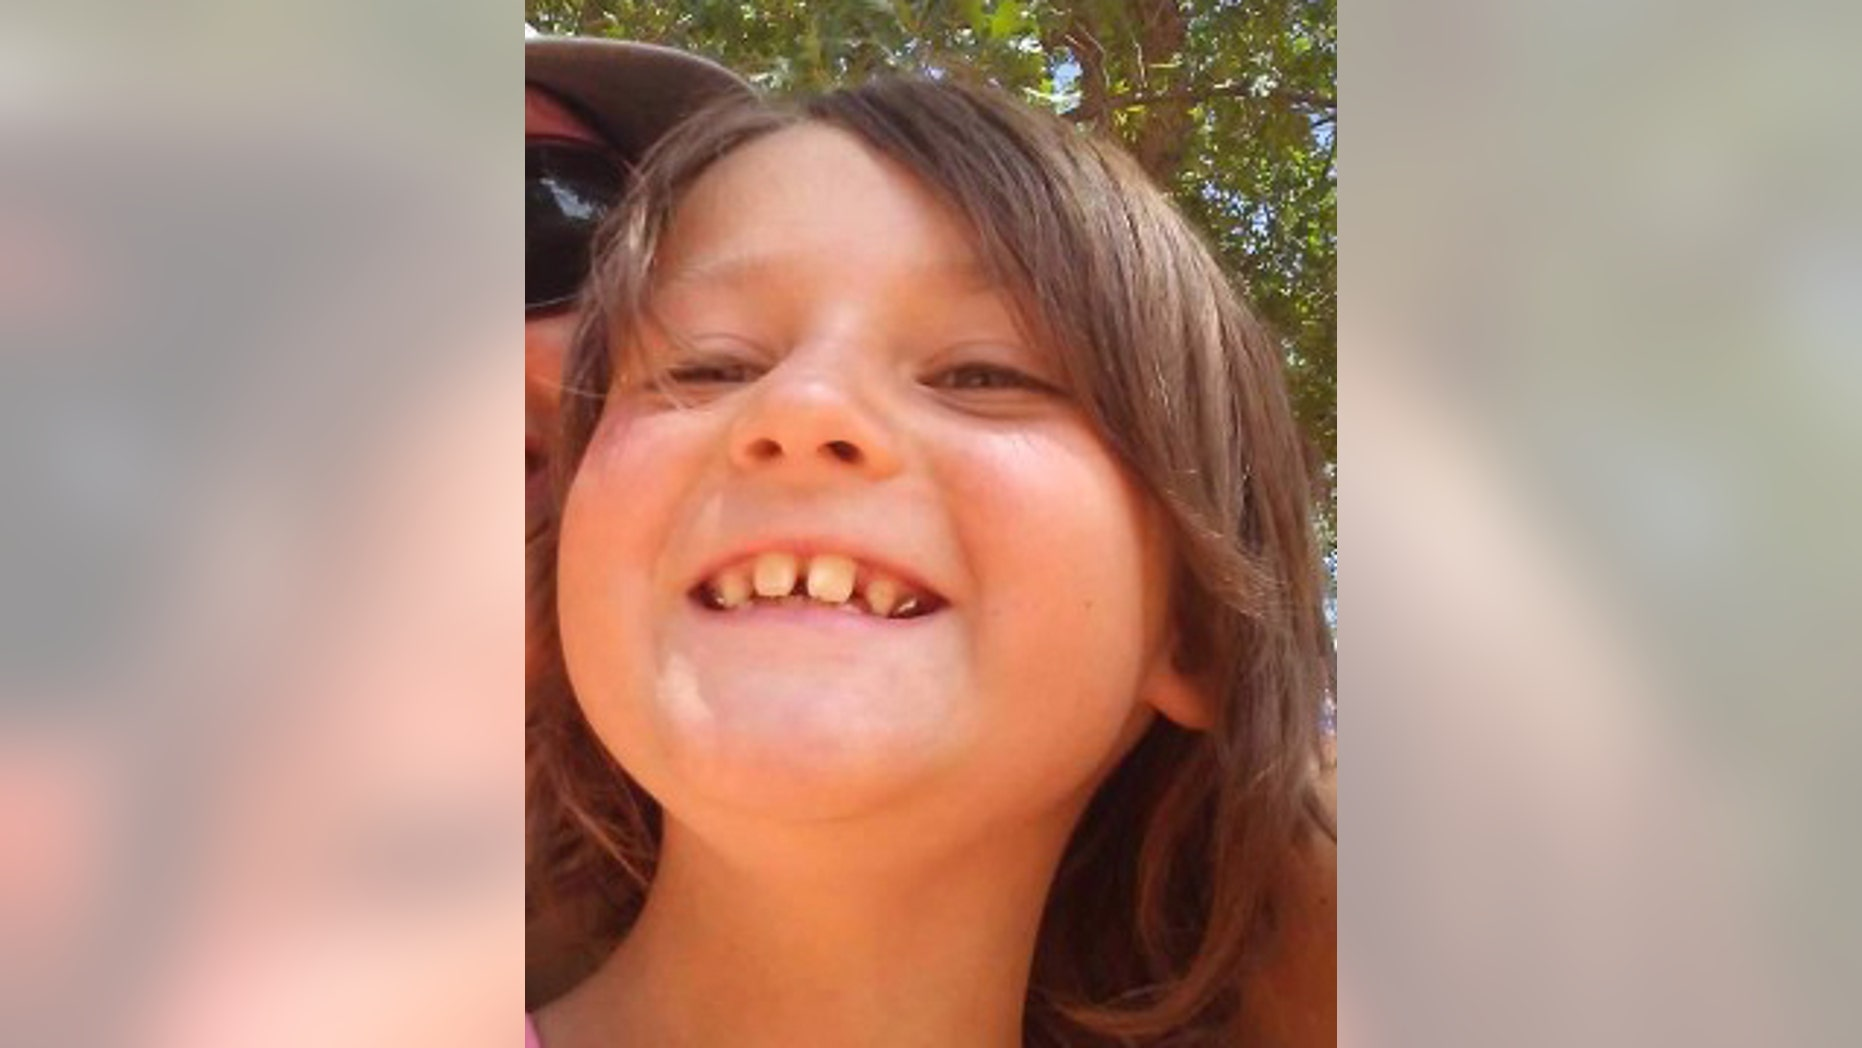 Gabriella Fullerton fell ill after coming into contact with dogs who had been around dirty diapers, her family said.